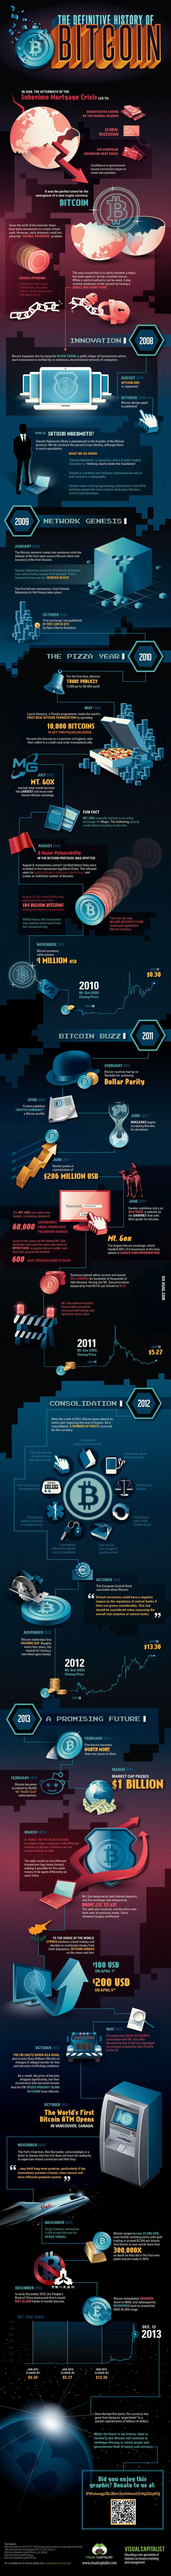 An amazing infographic about Bitcoin